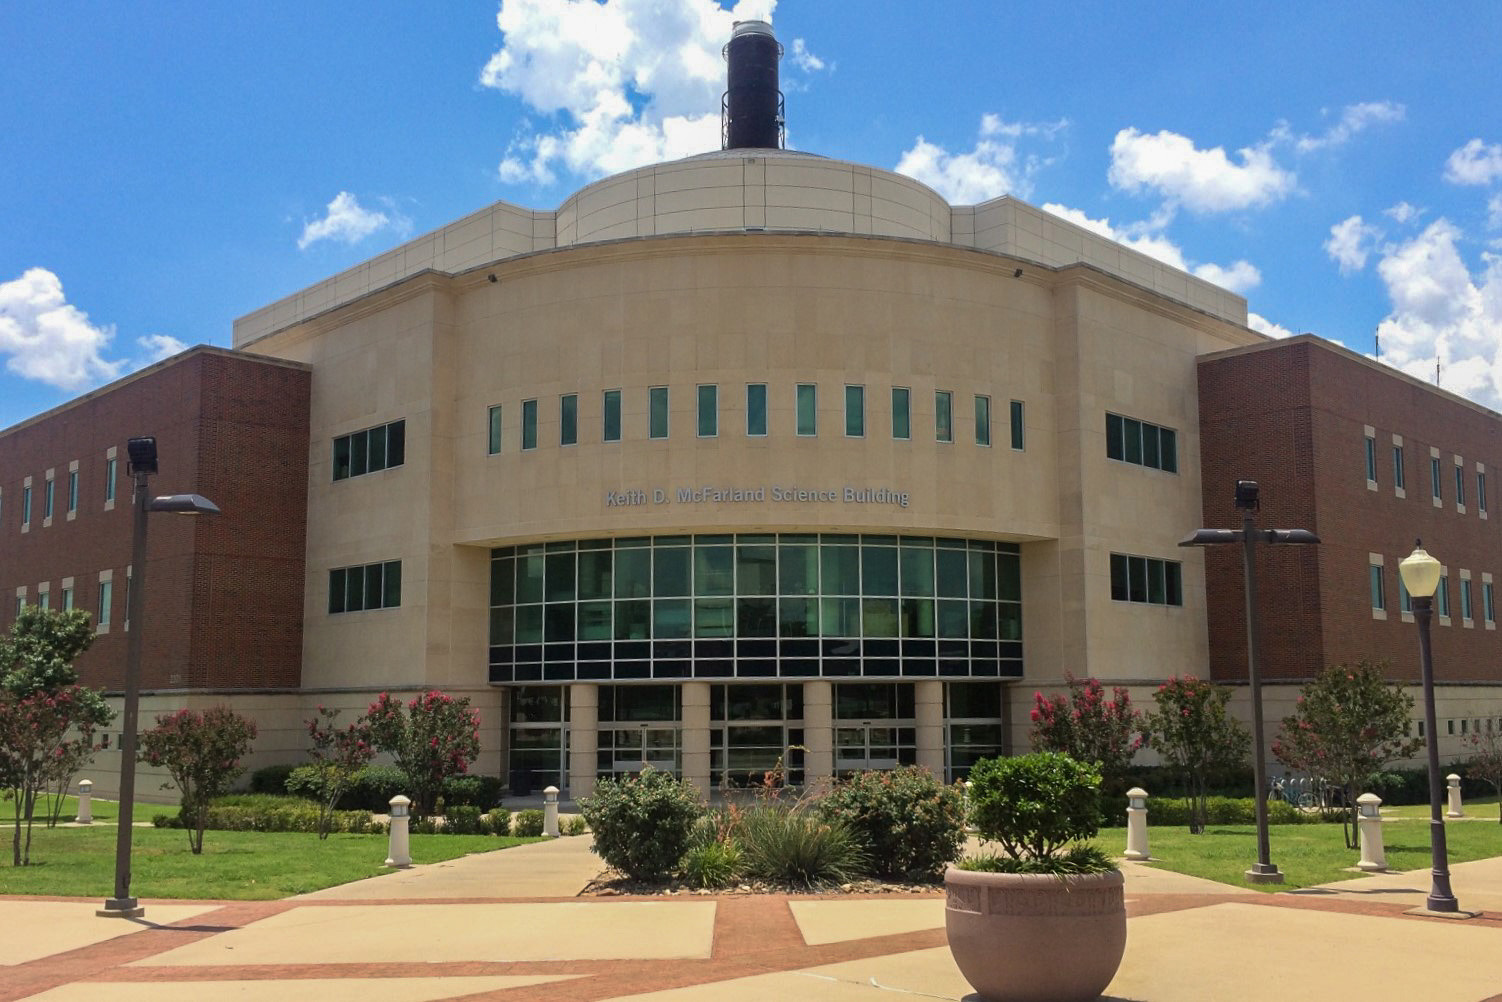 Texas A&M University at Commerce – McFarland Science Building